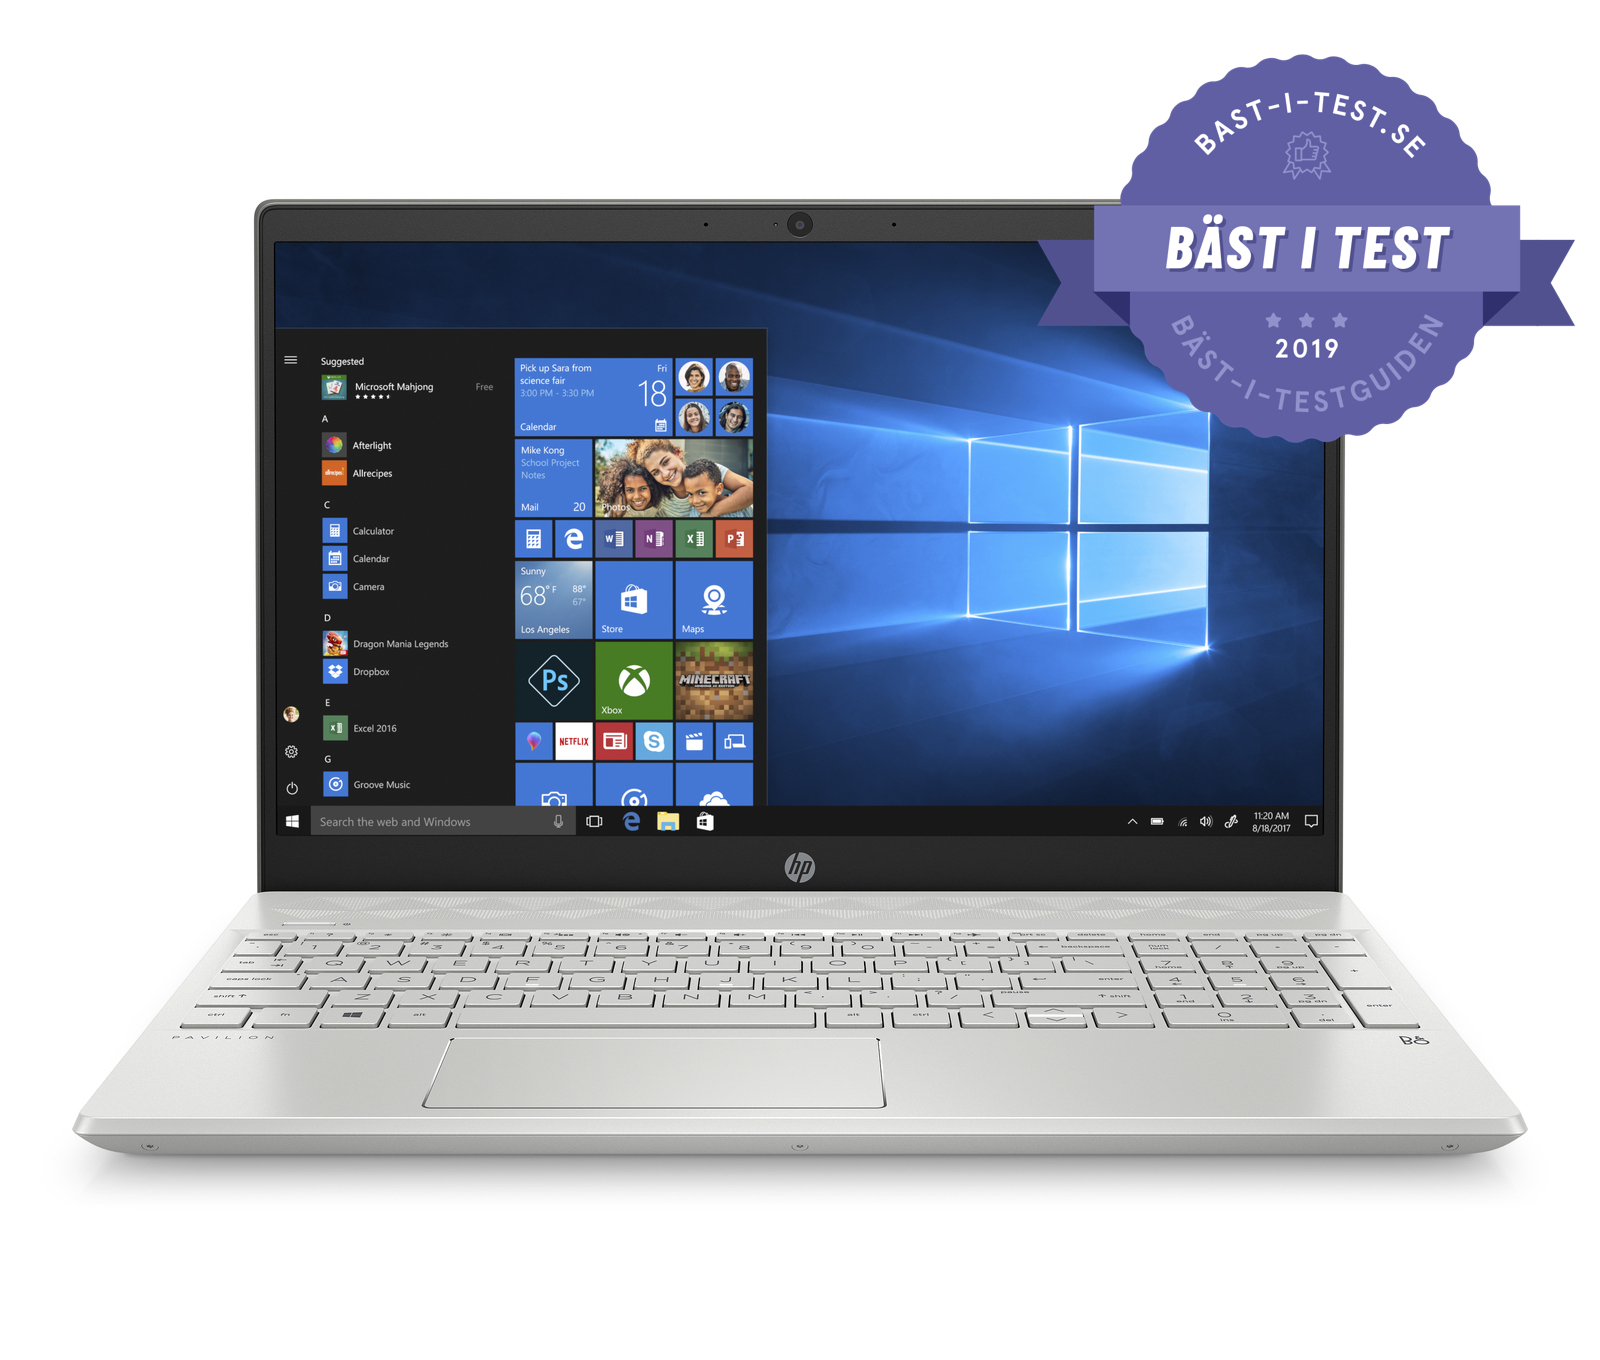 Bästa laptop 2019 - HP Pavilion 15-cw1008no/15-cw1009no